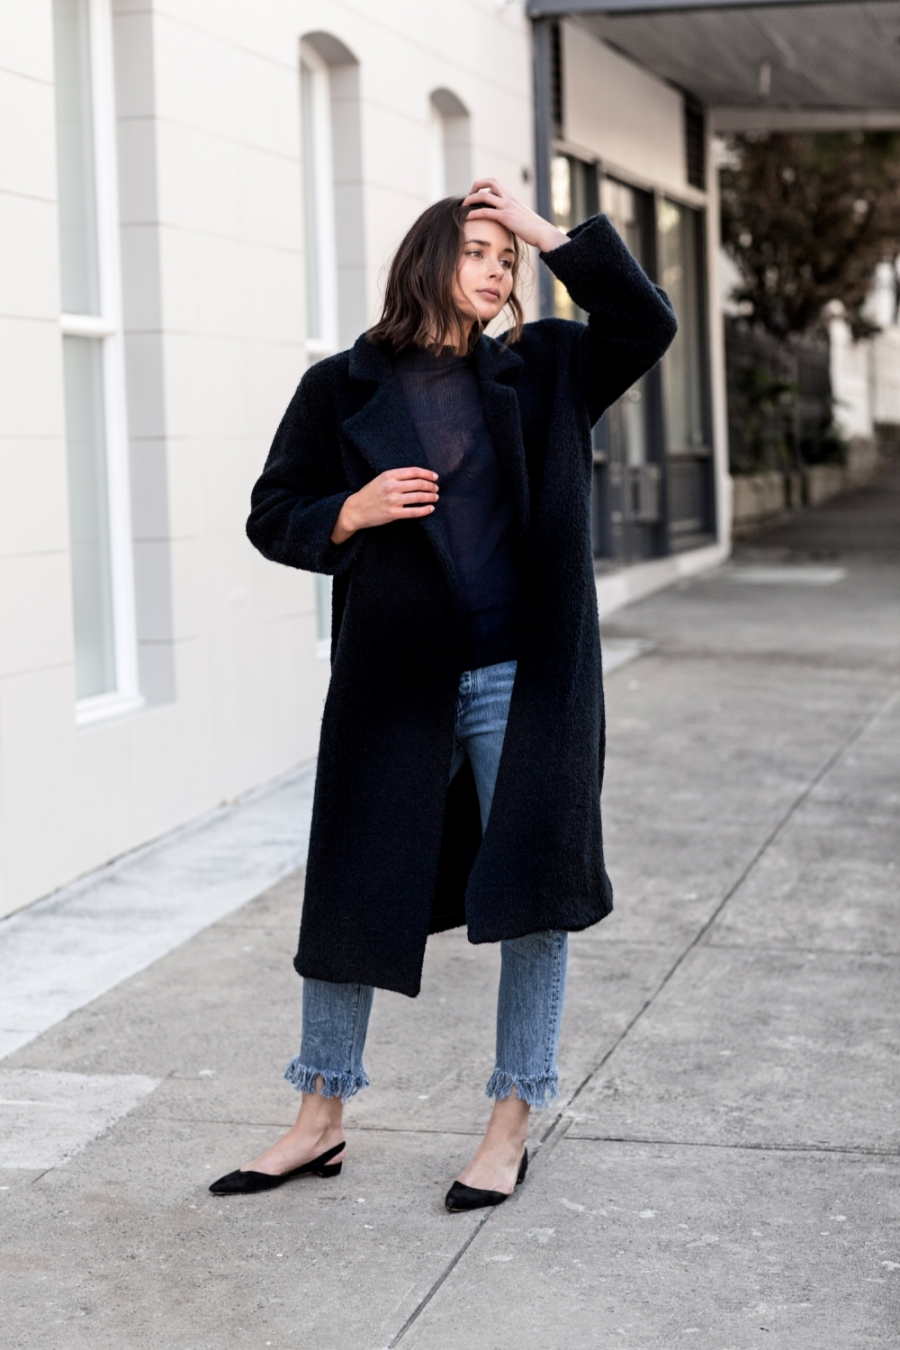 harper-and-harley_keeping-outfit-tonal_navy_denim_outfit_style_1-muypvkqsqtwt2l1lz8gbiakcj7yqkt25r3qniqlhh8